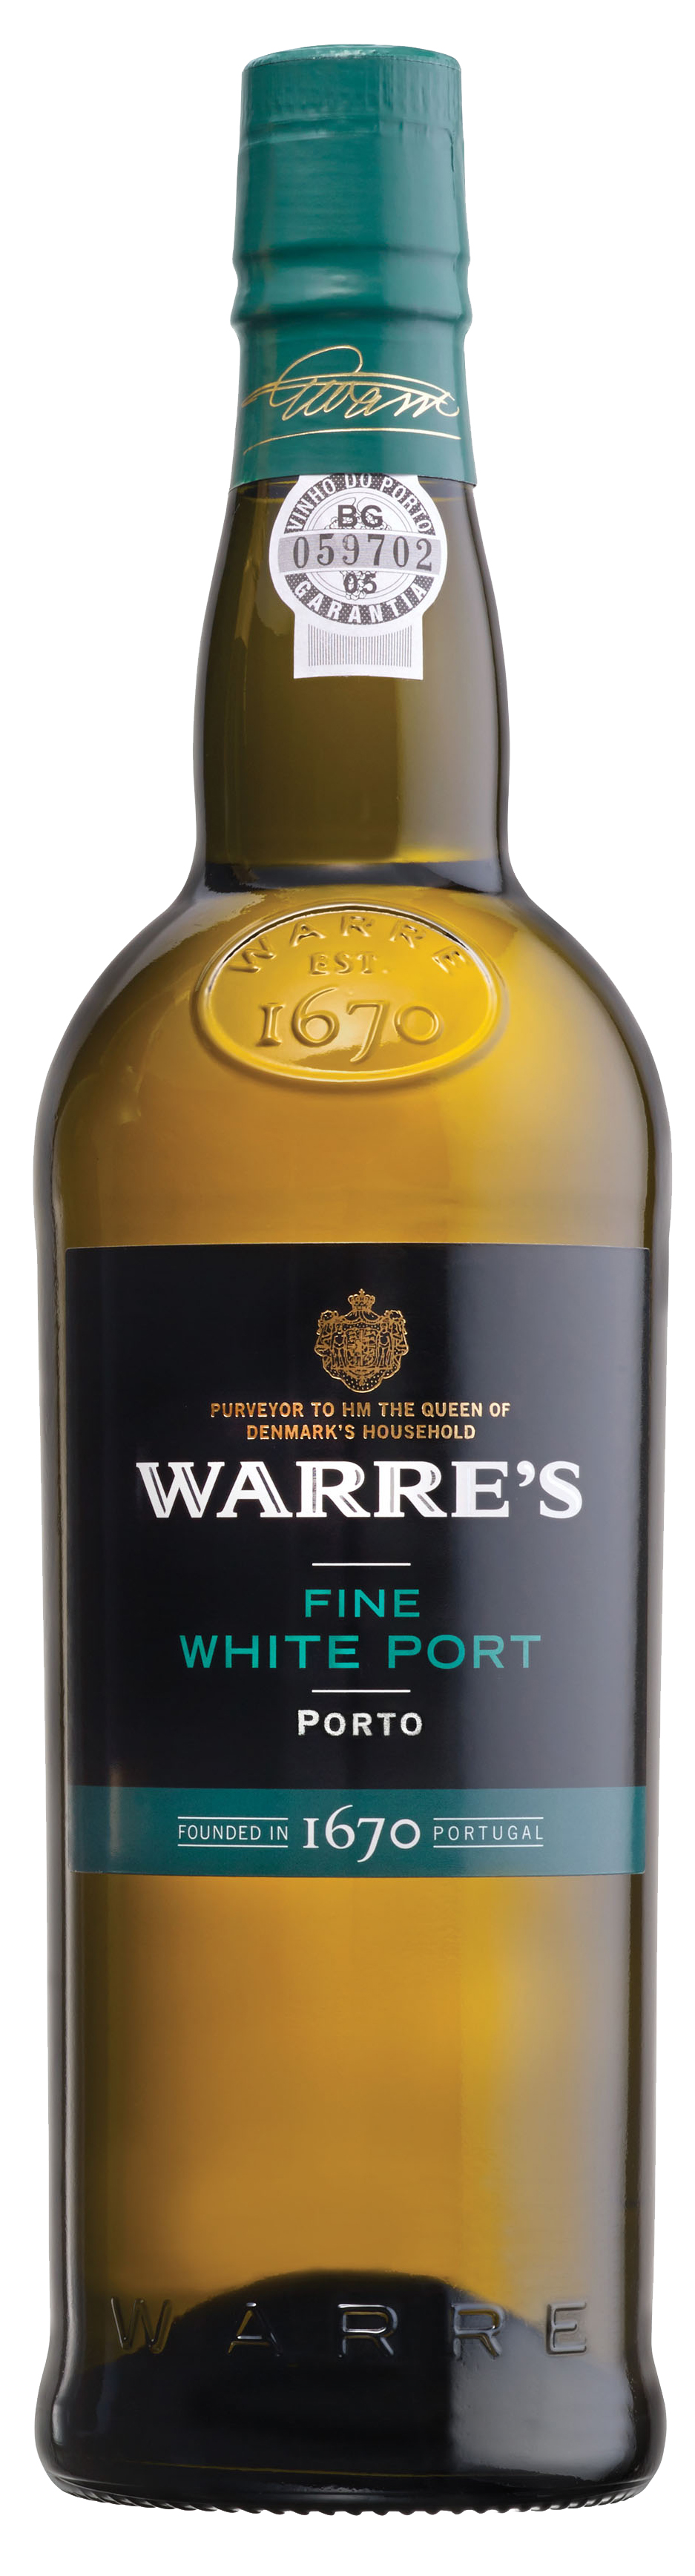 Warre's White Fine Port Bottle.jpg